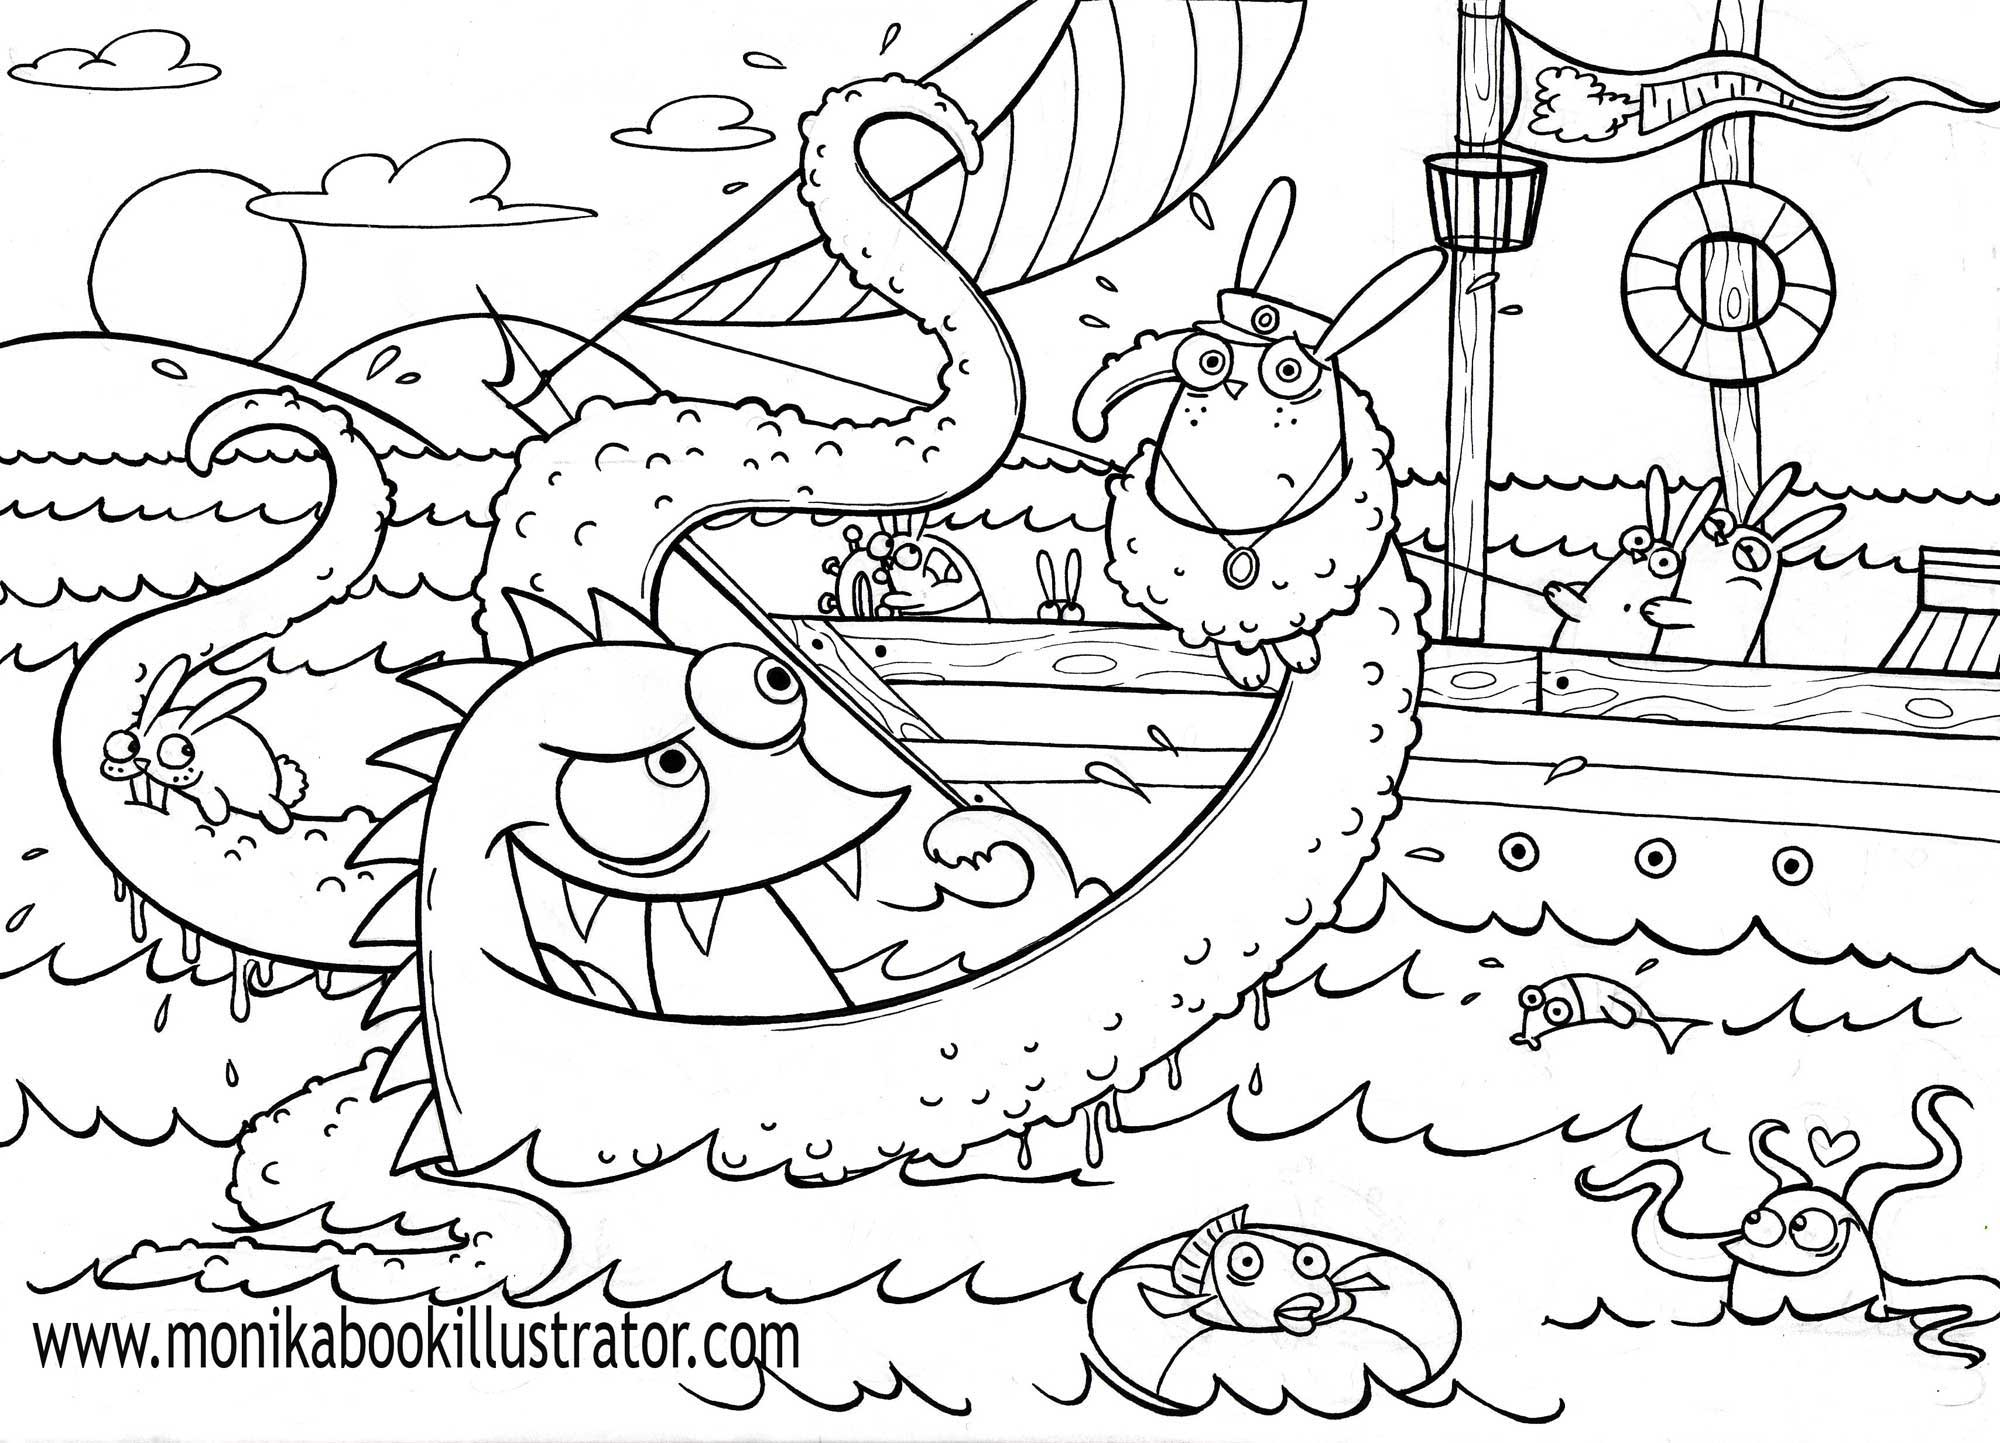 Monsters coloring page coloring home for Monster coloring pages